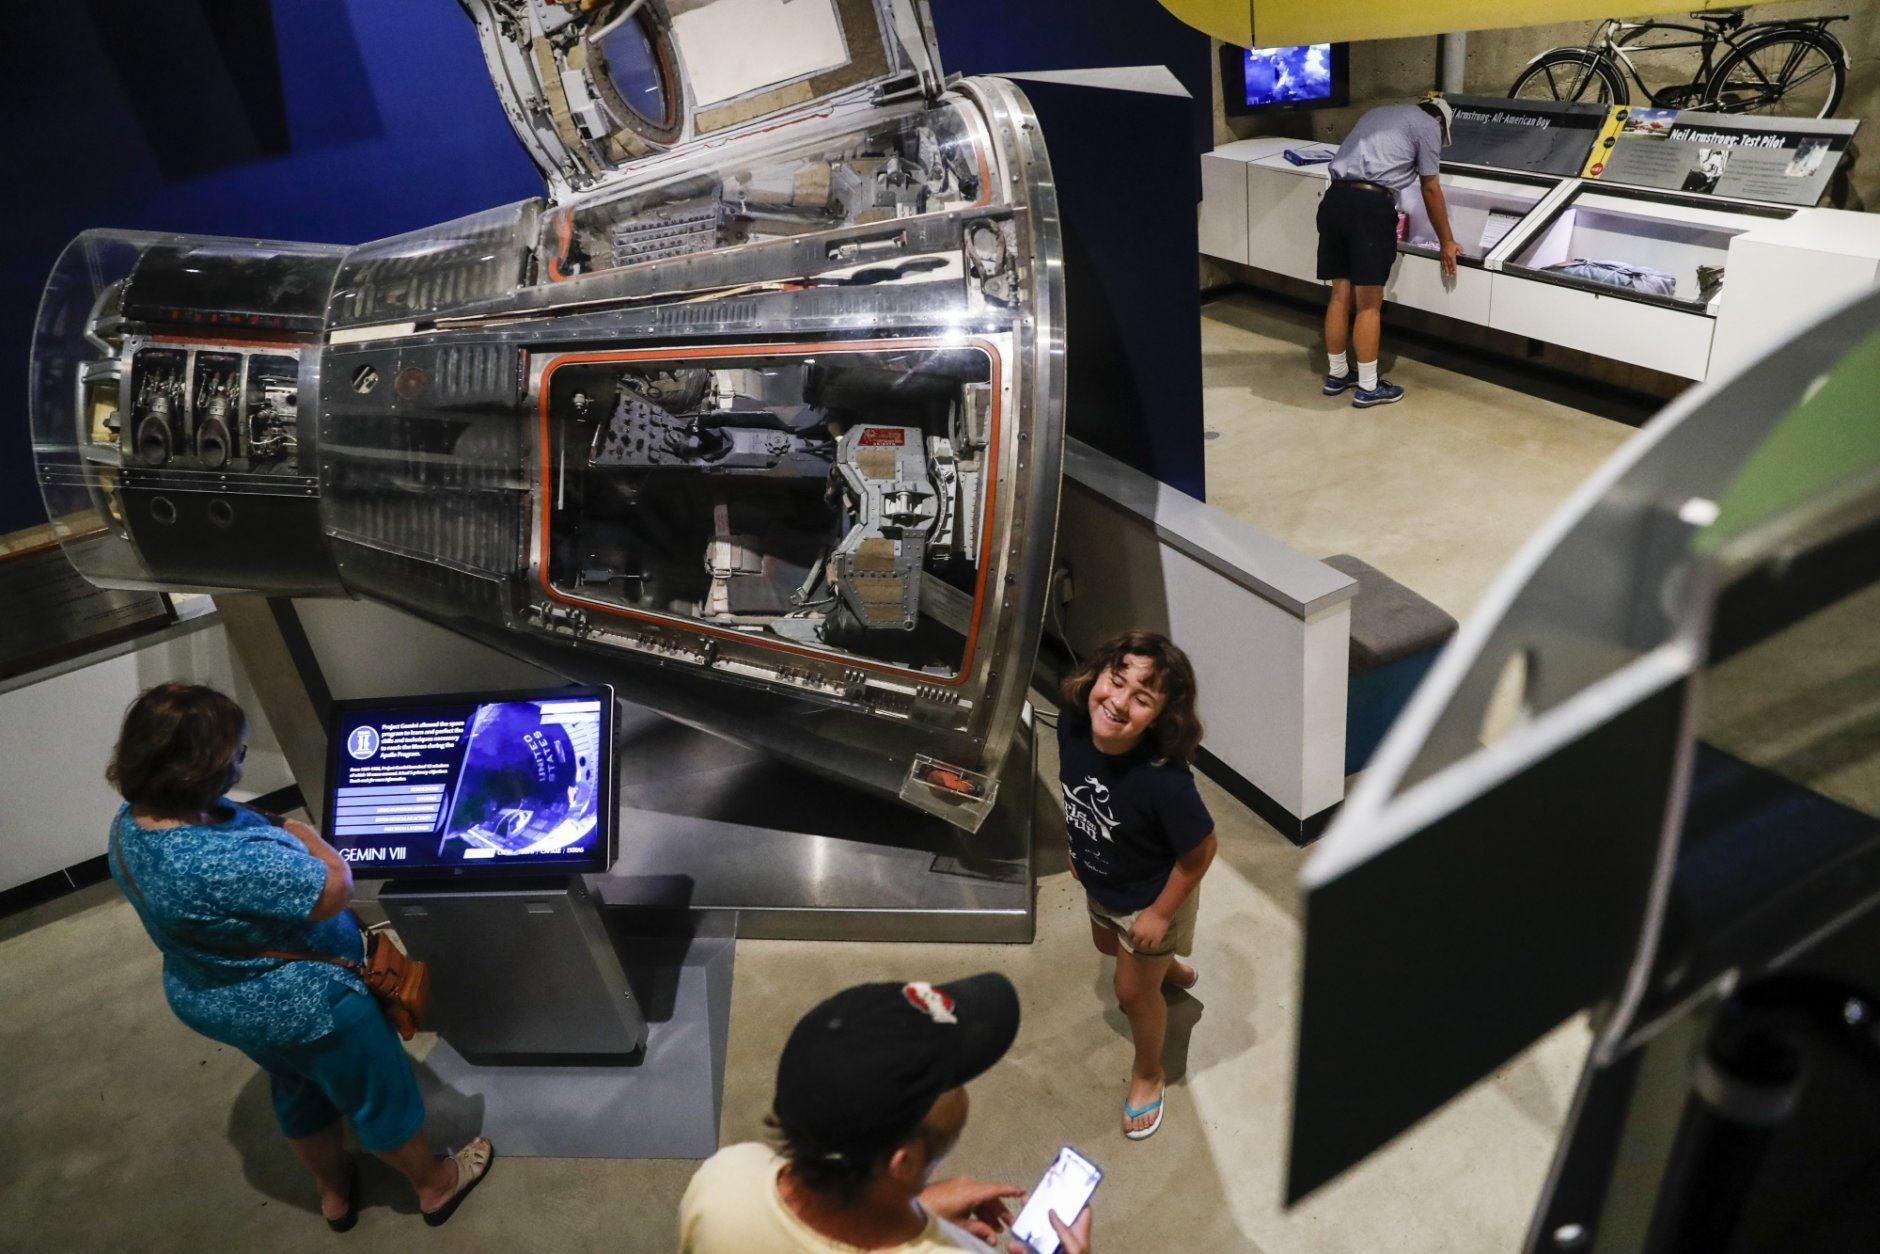 Visitors browse an exhibit featuring the Gemini VIII spacecraft at the Armstrong Air & Space Museum, Wednesday, June 26, 2019, in Wapakoneta, Ohio.  Neil Armstrong helped put Wapakoneta  on the map July 20, 1969, when he became the first human to walk on the moon. The late astronaut remains larger than life in the city 60 miles (96.56 kilometers) north of Dayton, where visitors are greeted by the space base-shaped top of the space museum named for him as they exit Interstate 75. (AP Photo/John Minchillo)